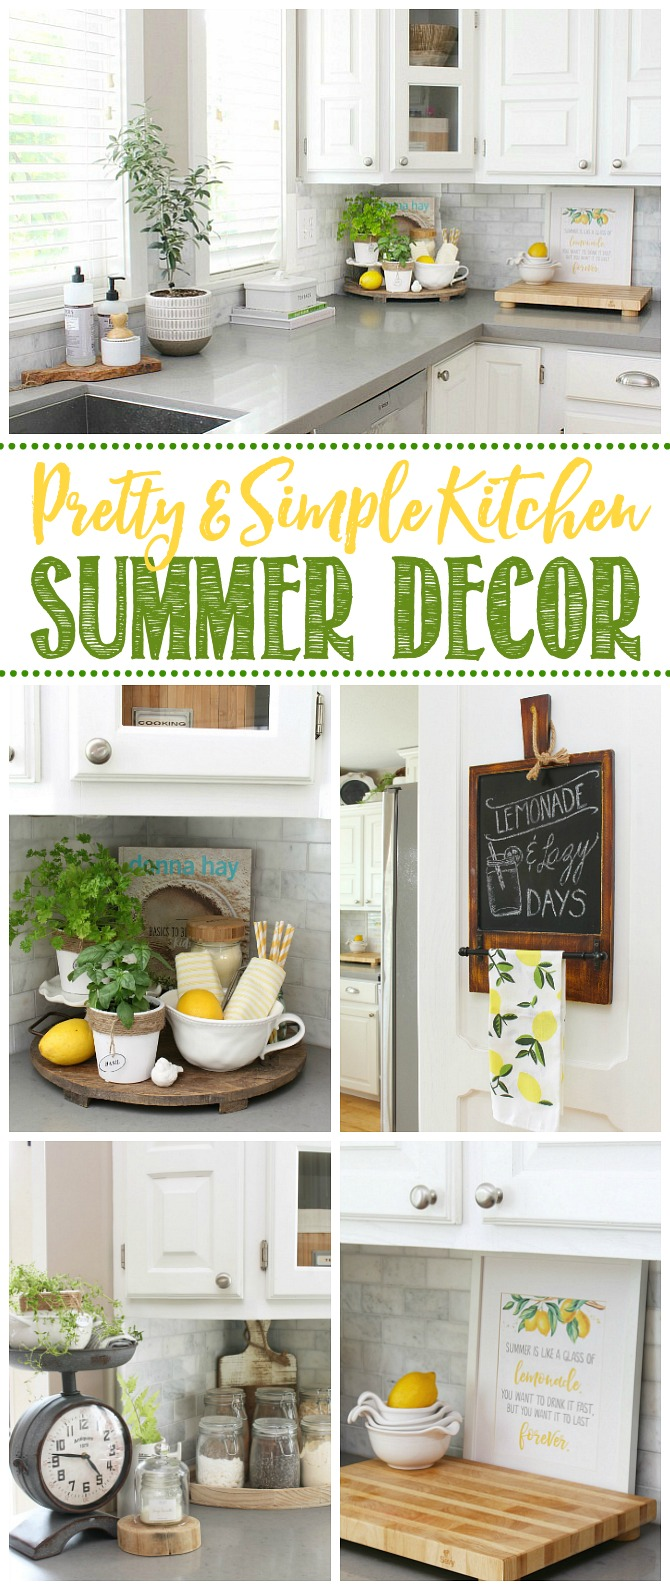 Collage of simple summer kitchen decor ideas with greens and yellows.